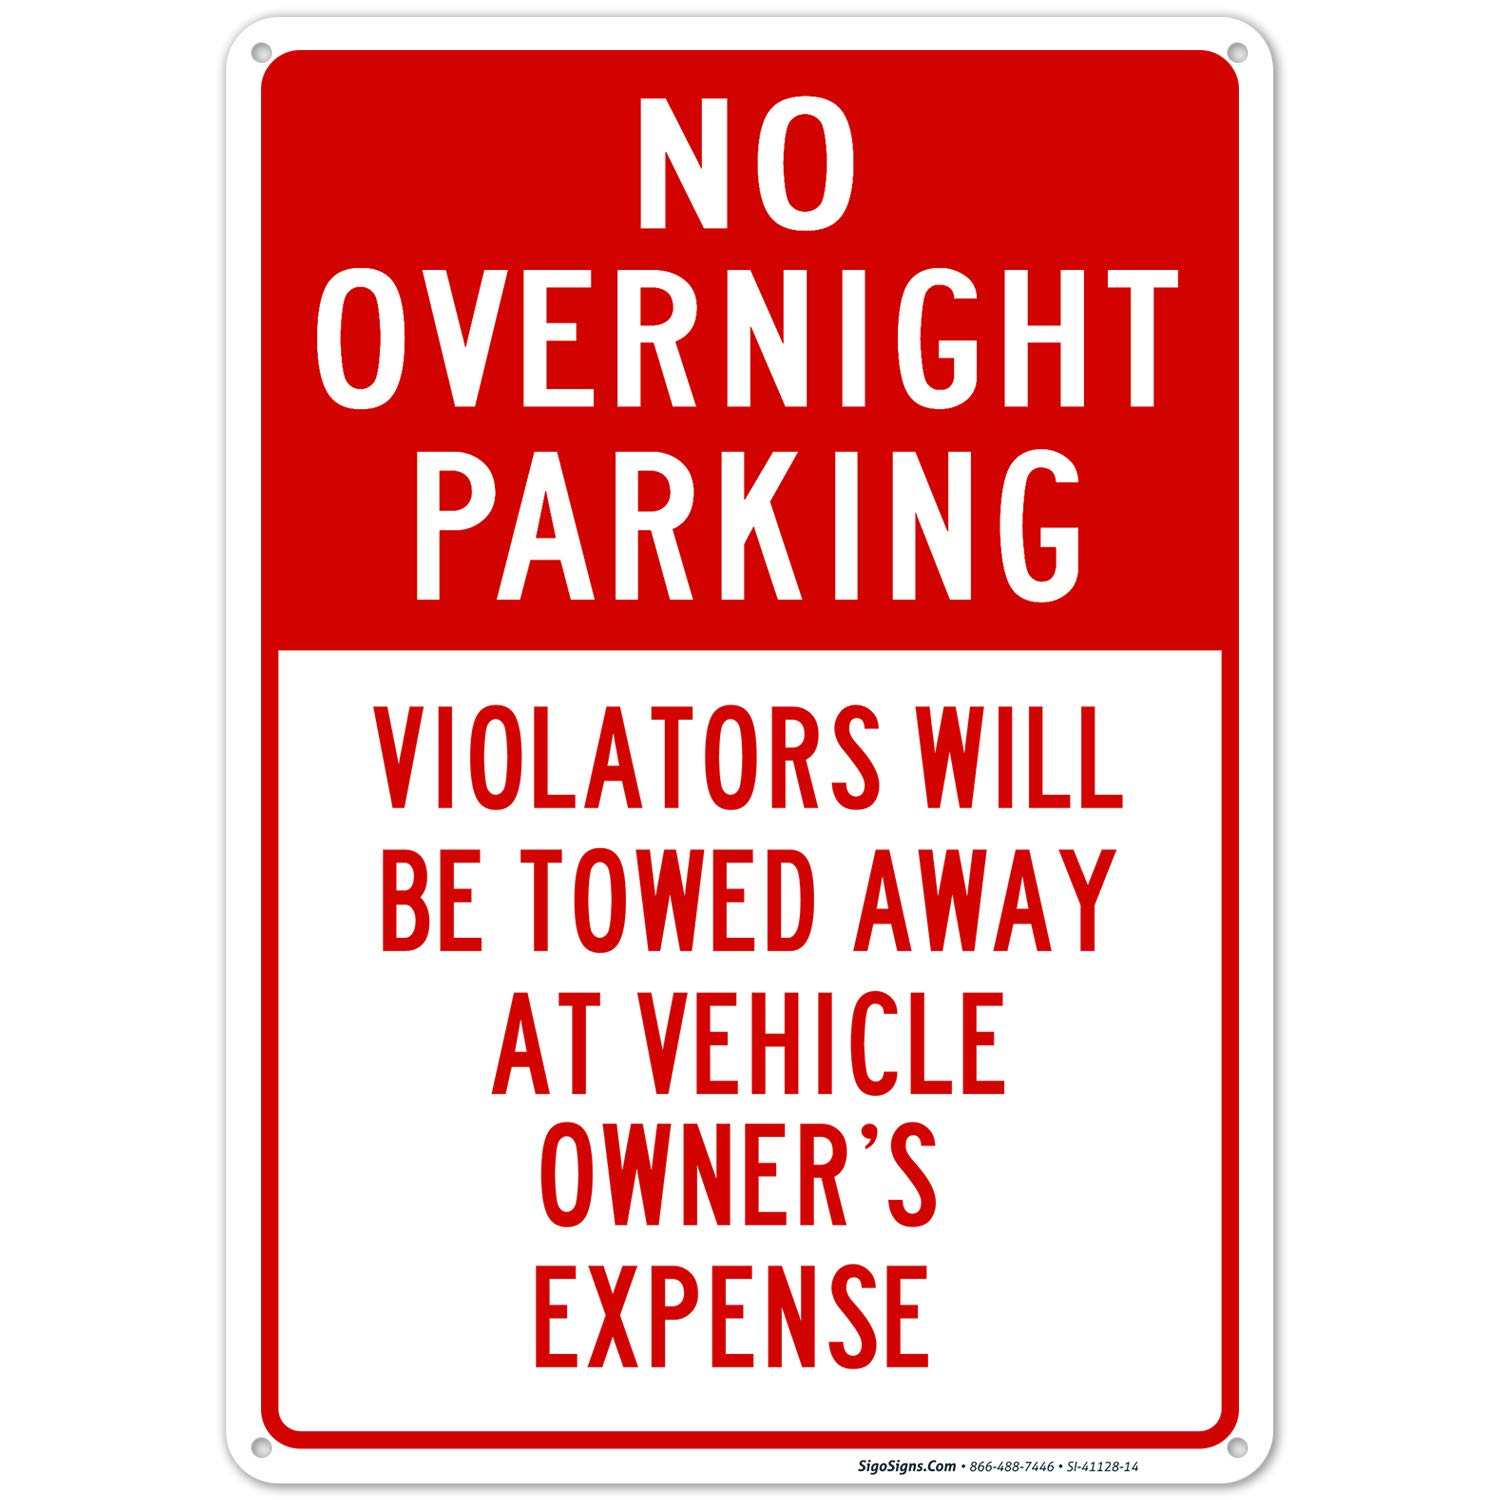 No Overnight Parking Violaters Will Be Towed Away 10X14 Rust Free Aluminum, Weather/Fade Resistant, Easy Mounting, Indoor/Outdoor Use, Made in USA by SIGO SIGNS